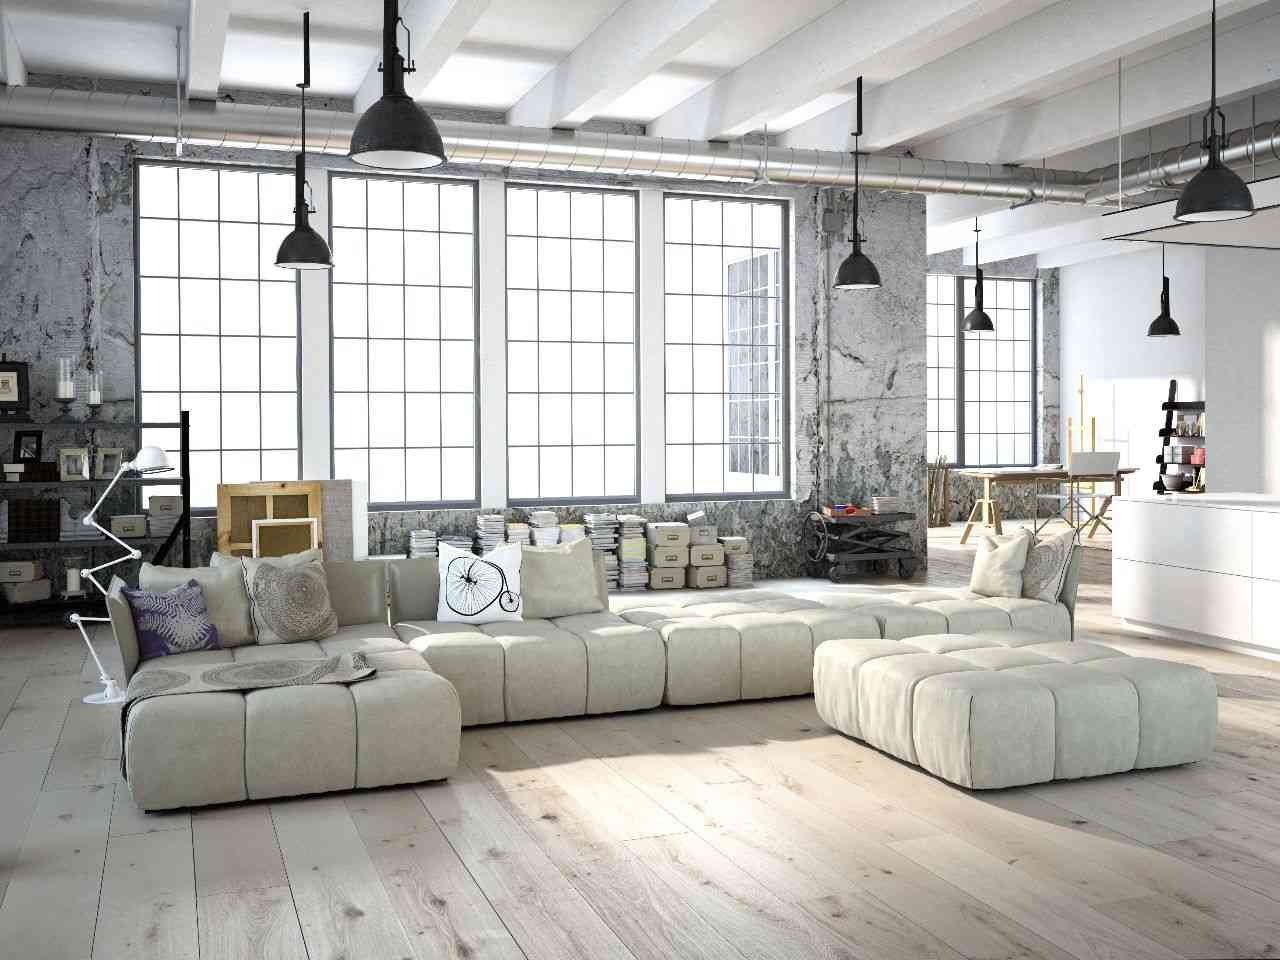 Ideas originales para decorar un loft con estilo